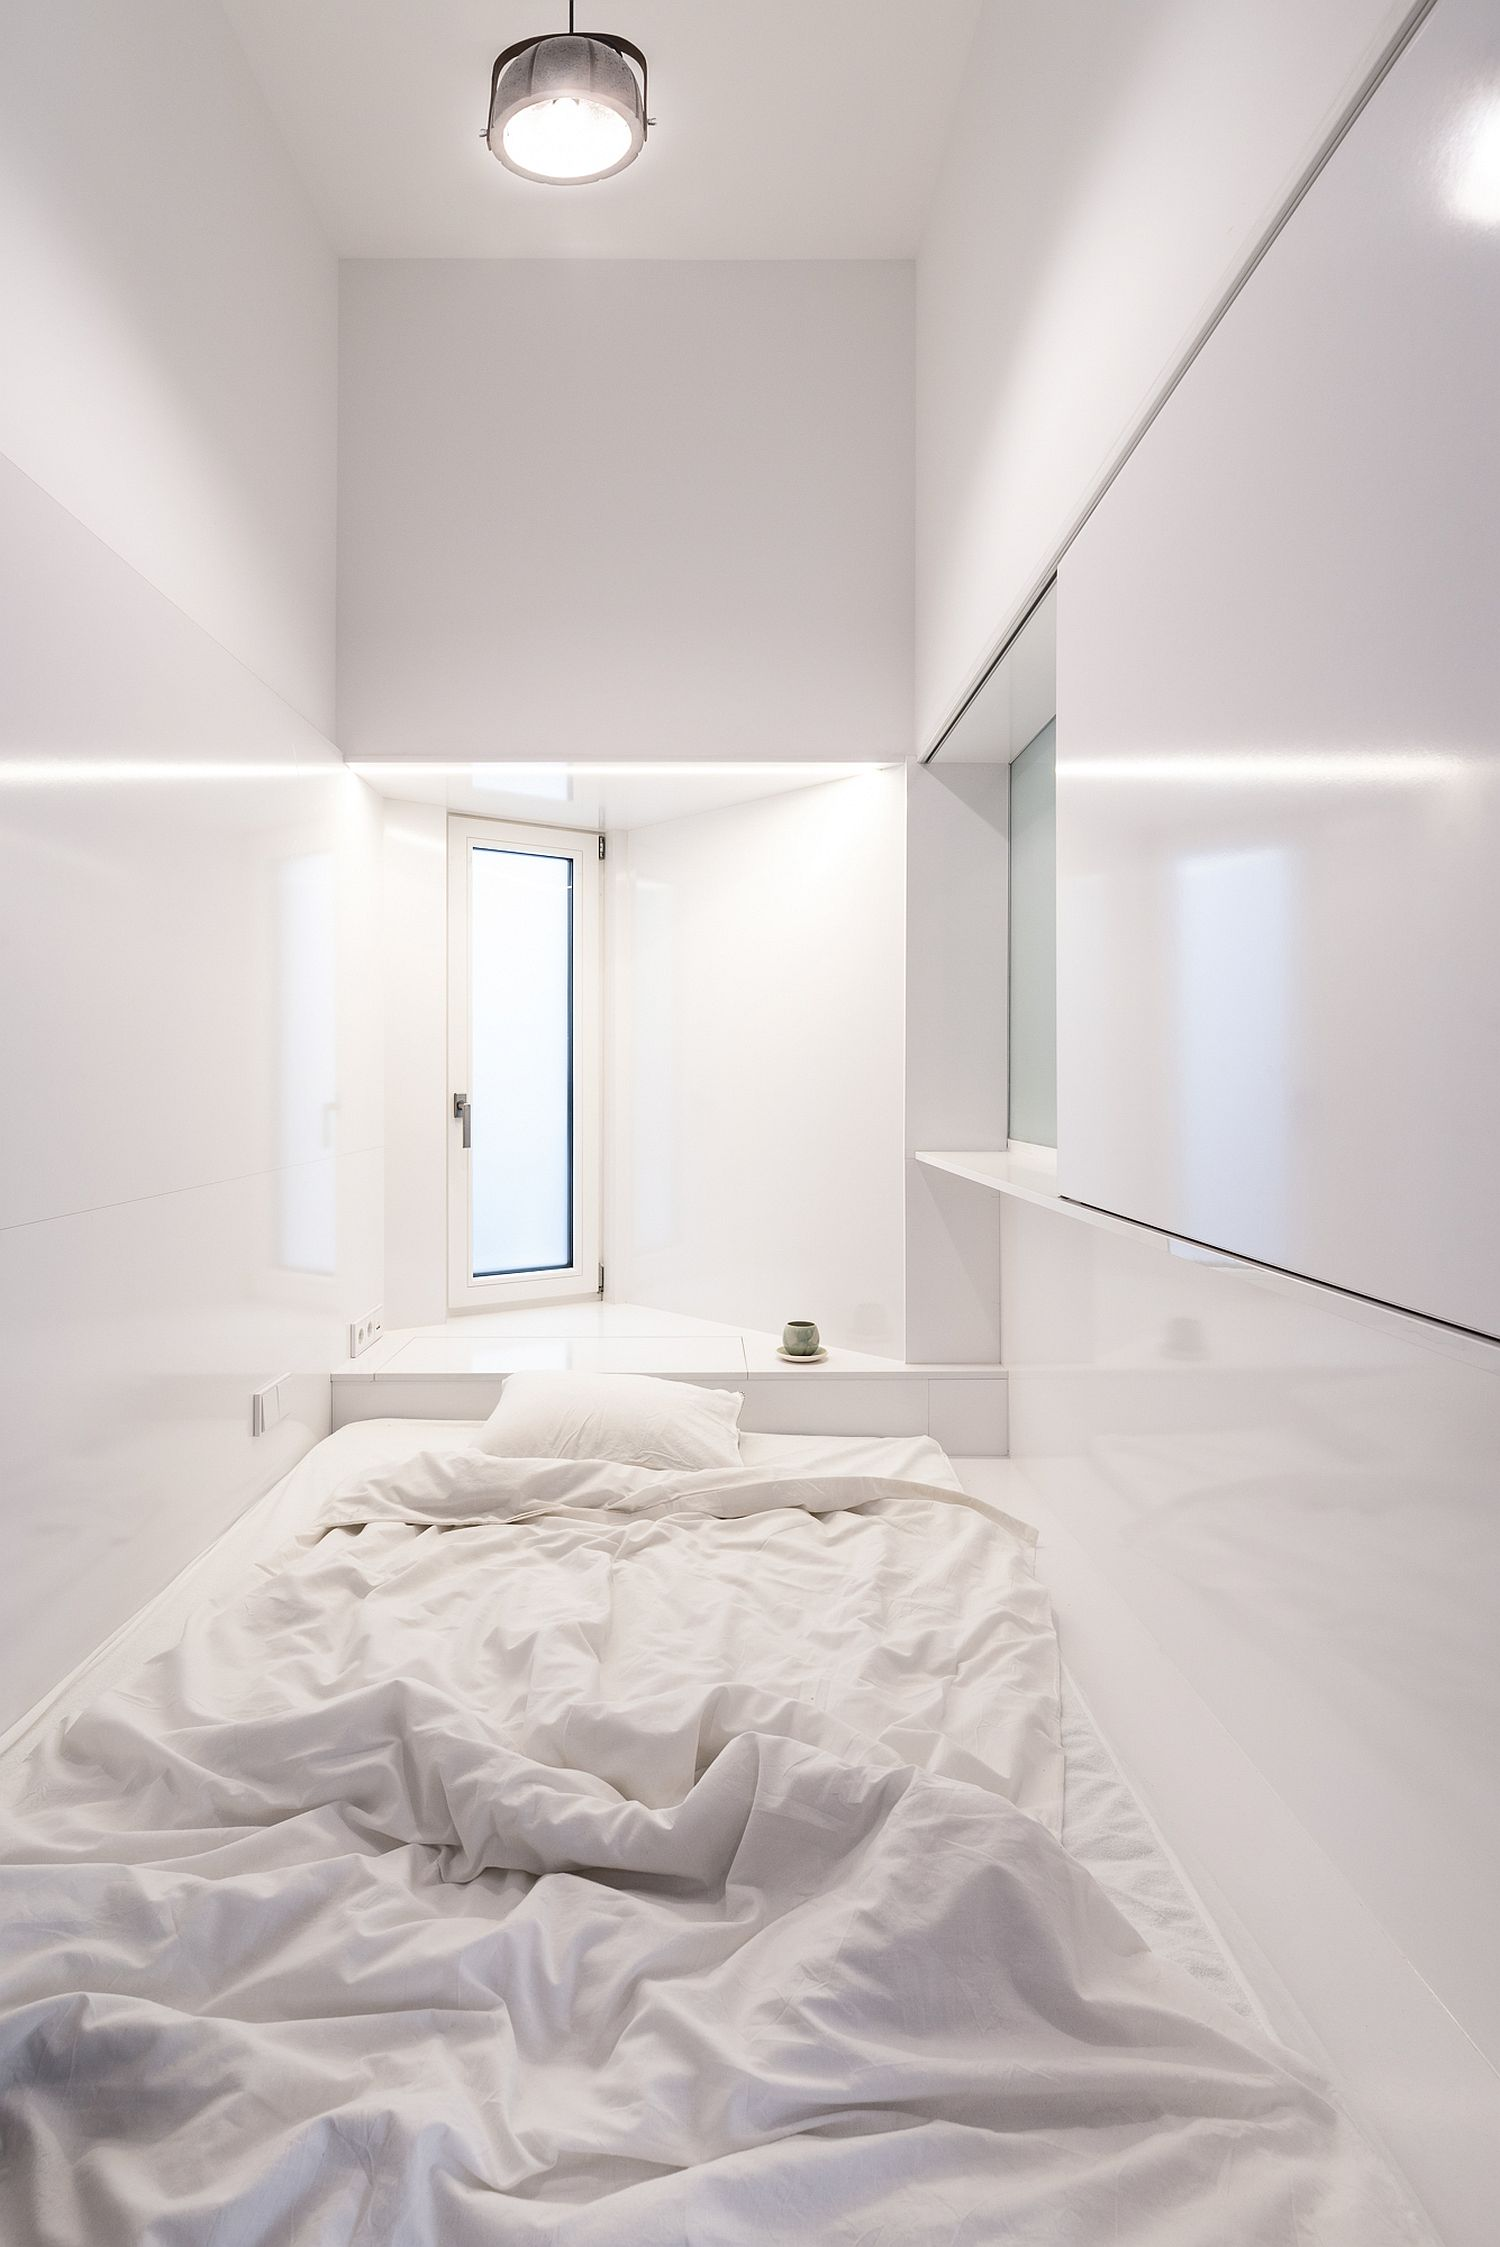 Uber-tiny bedroom in white with the bare minimum